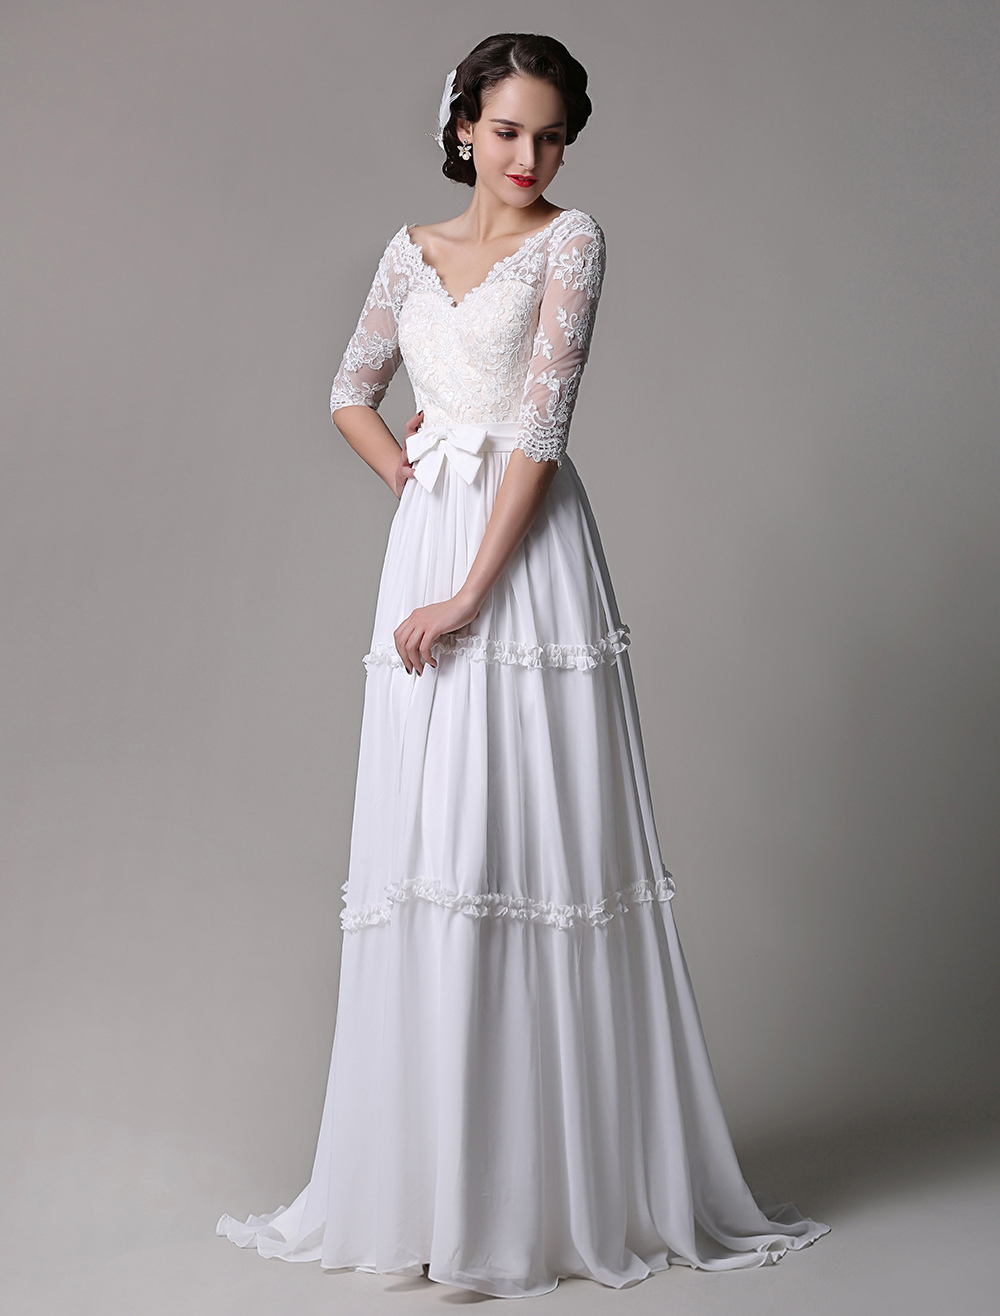 Milanoo / Boho Wedding Dress Vintage A-Line Lace Chiffon Half Sleeves V-neck Backless Boho Wedding Dress